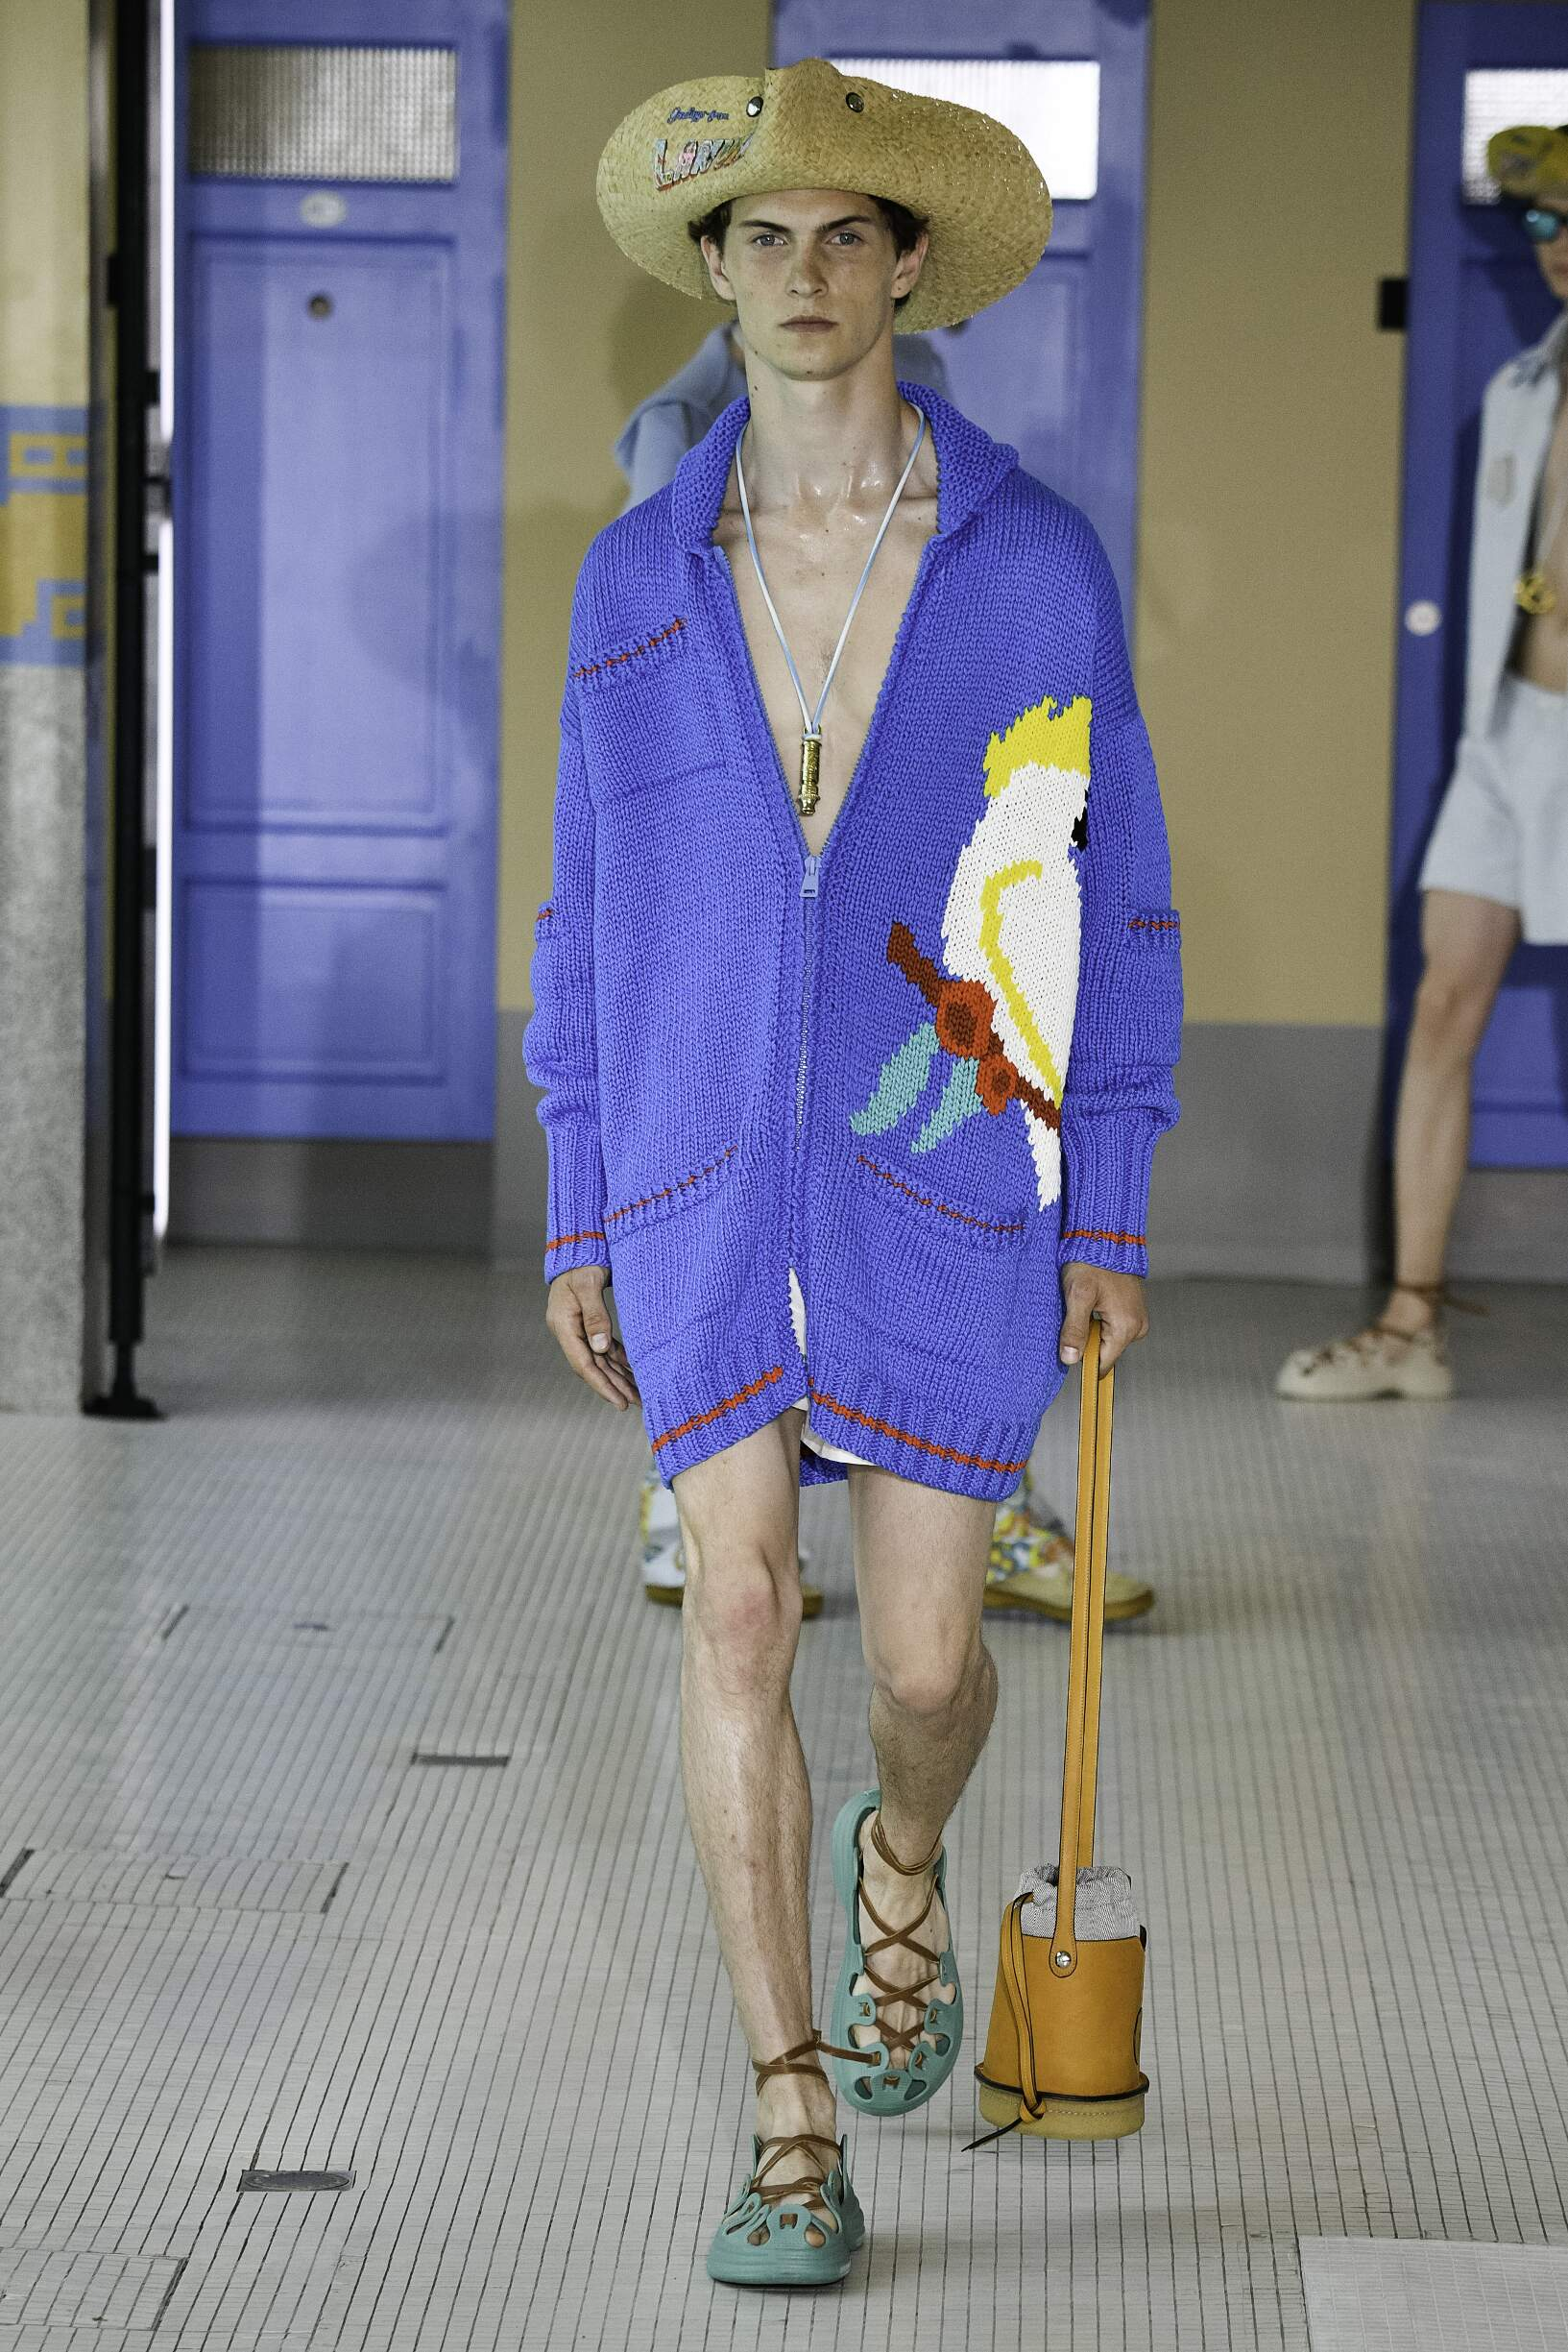 Man SS 2020 Lanvin Show Paris Fashion Week